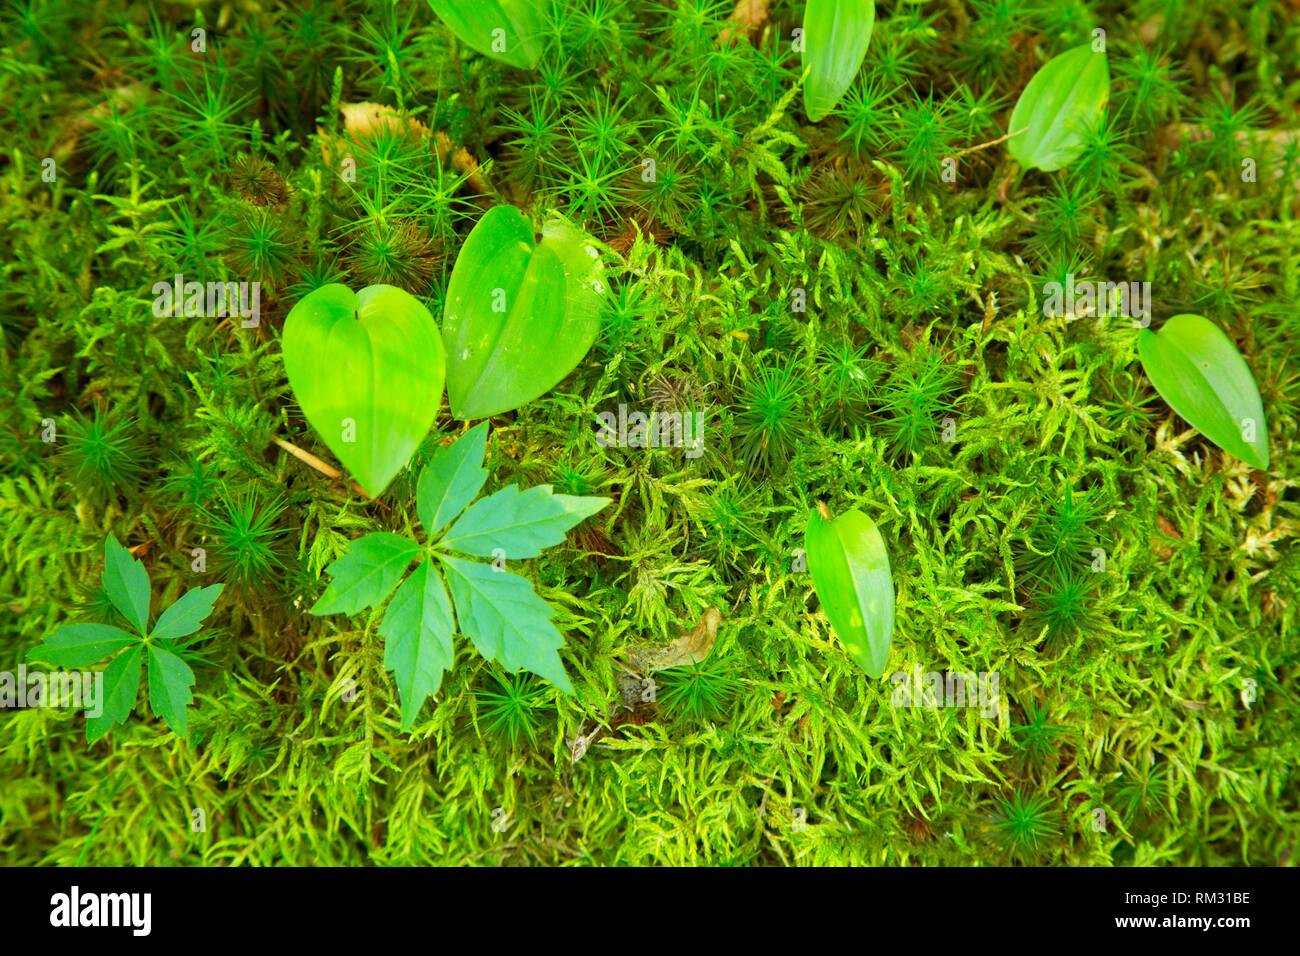 Virginia creeper in moss along Heritage Trail, Hartman Park, Lyme, Connecticut. - Stock Image